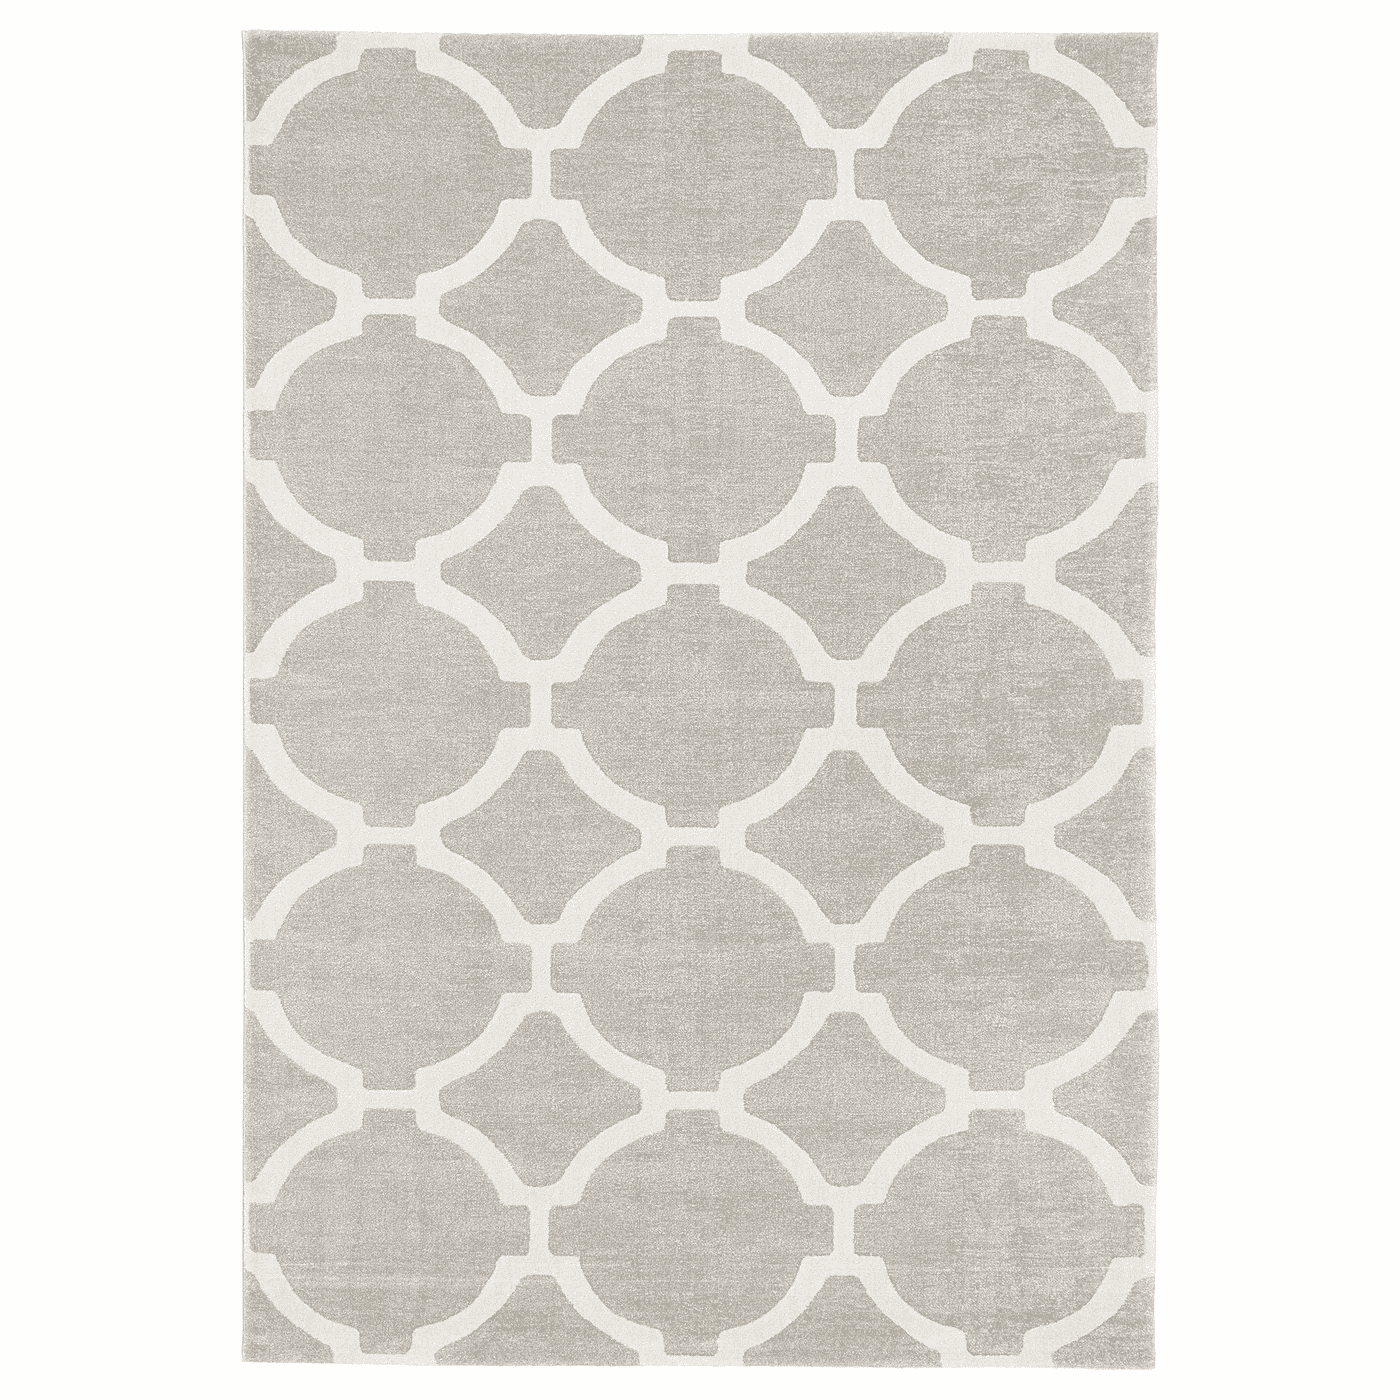 HILLESTED Rug, low pile, gray-white